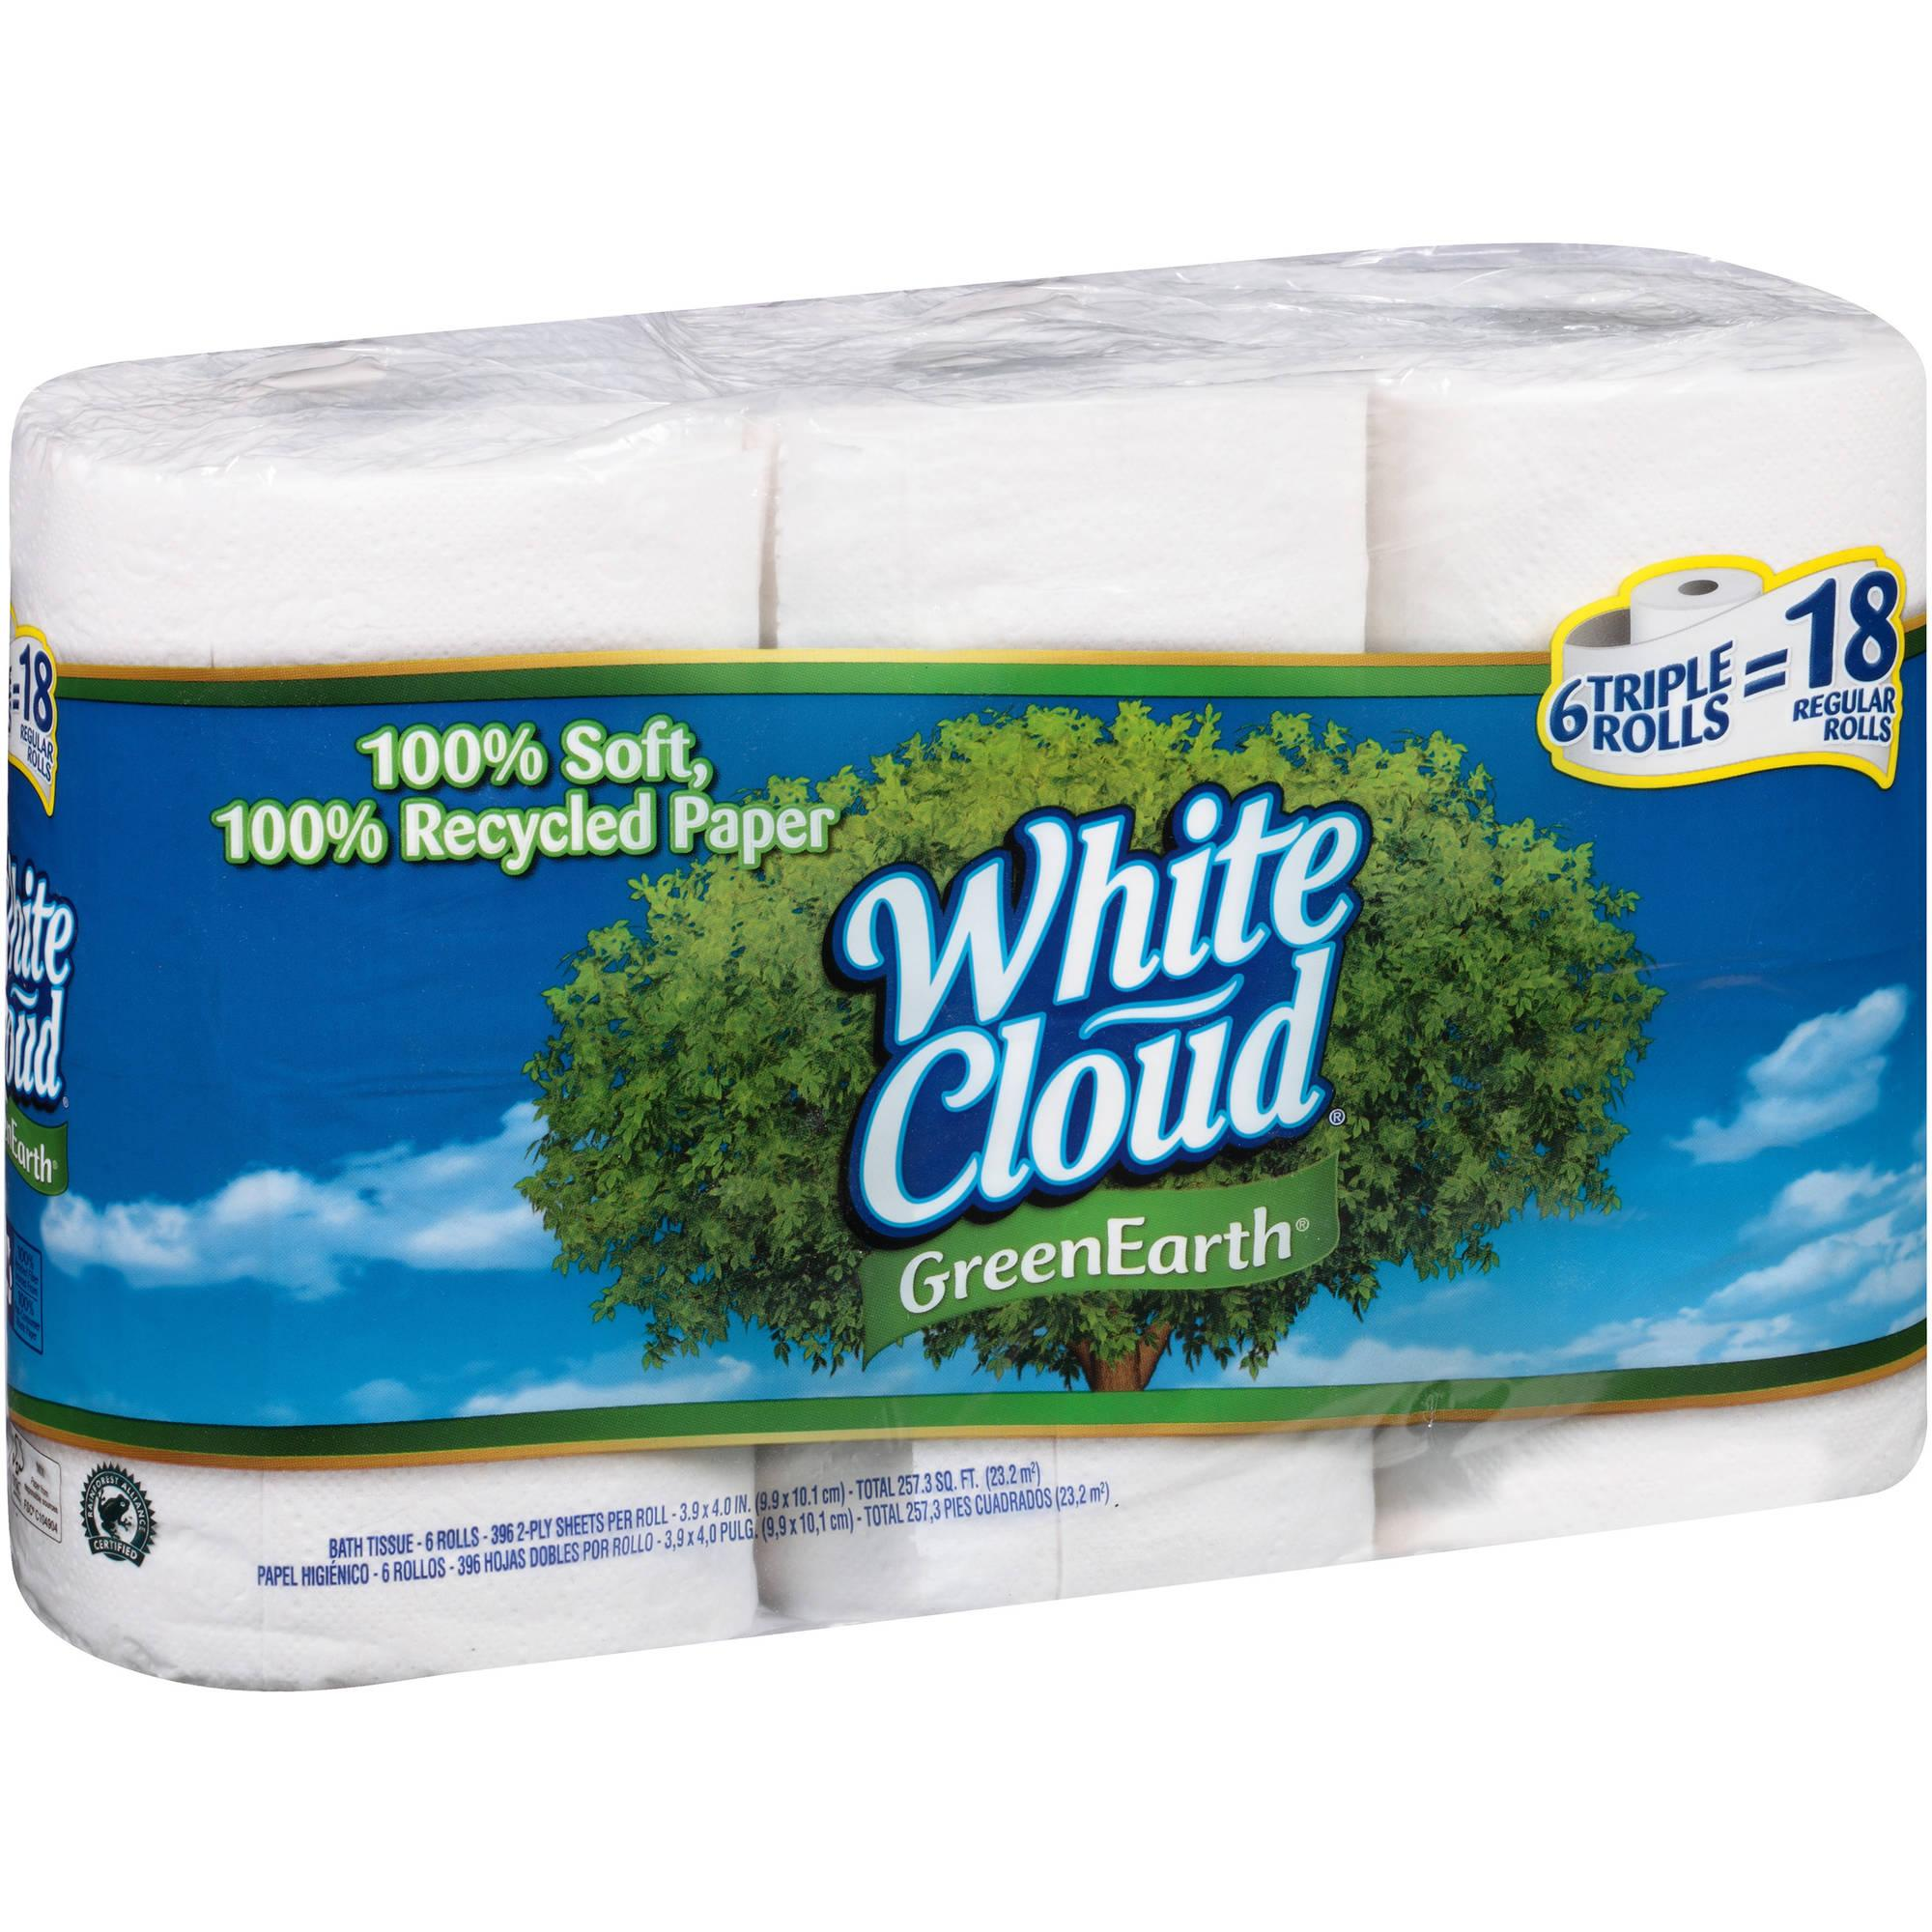 White Cloud GreenEarth, 6 Recycled Toilet Paper Rolls, 396 Sheets Each